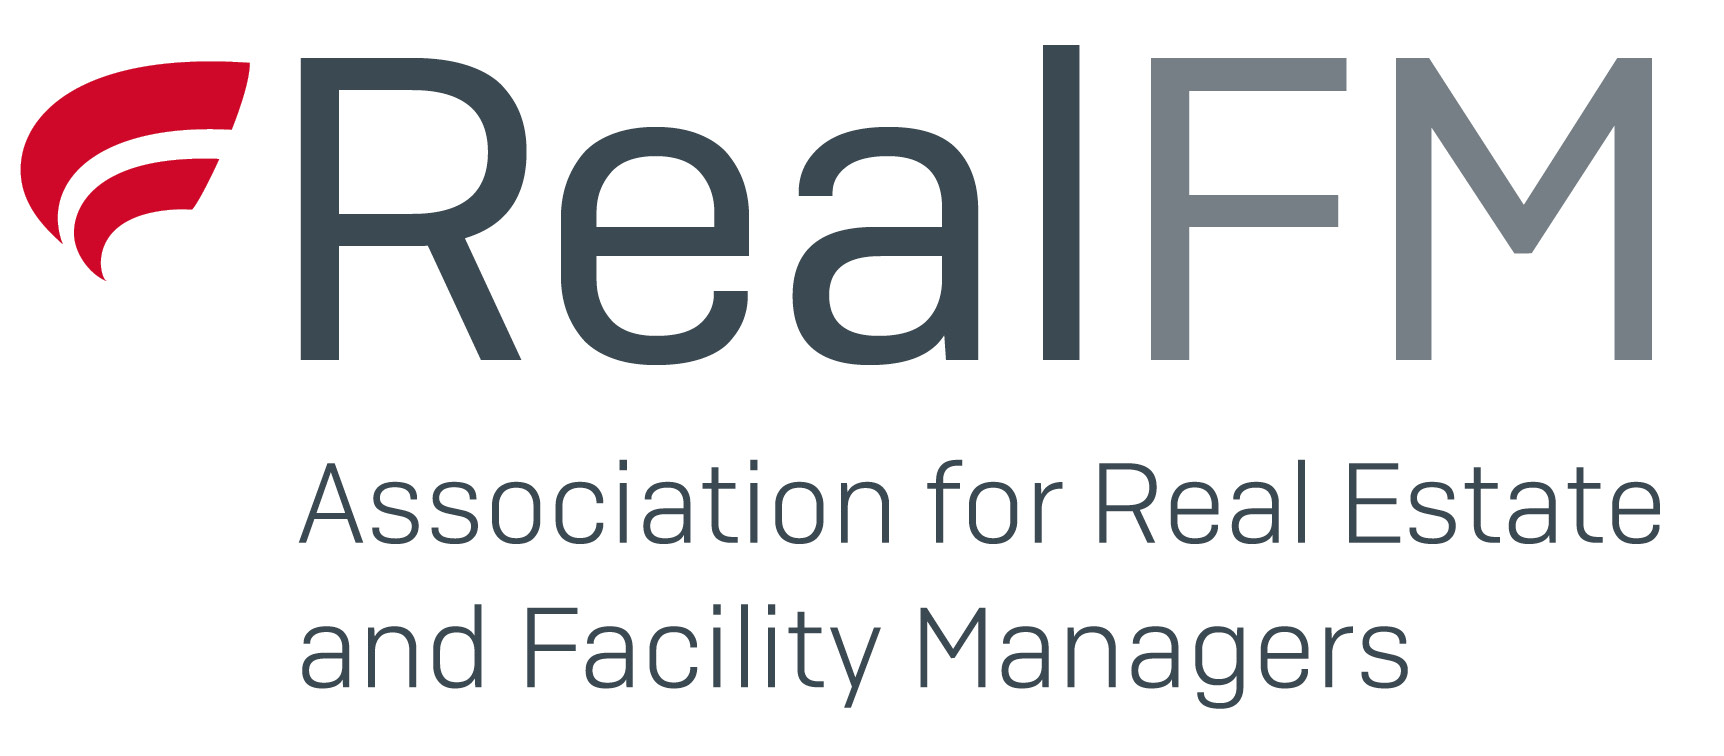 Logo Real FM, Berufsverband der Real Estate und Facility Manager